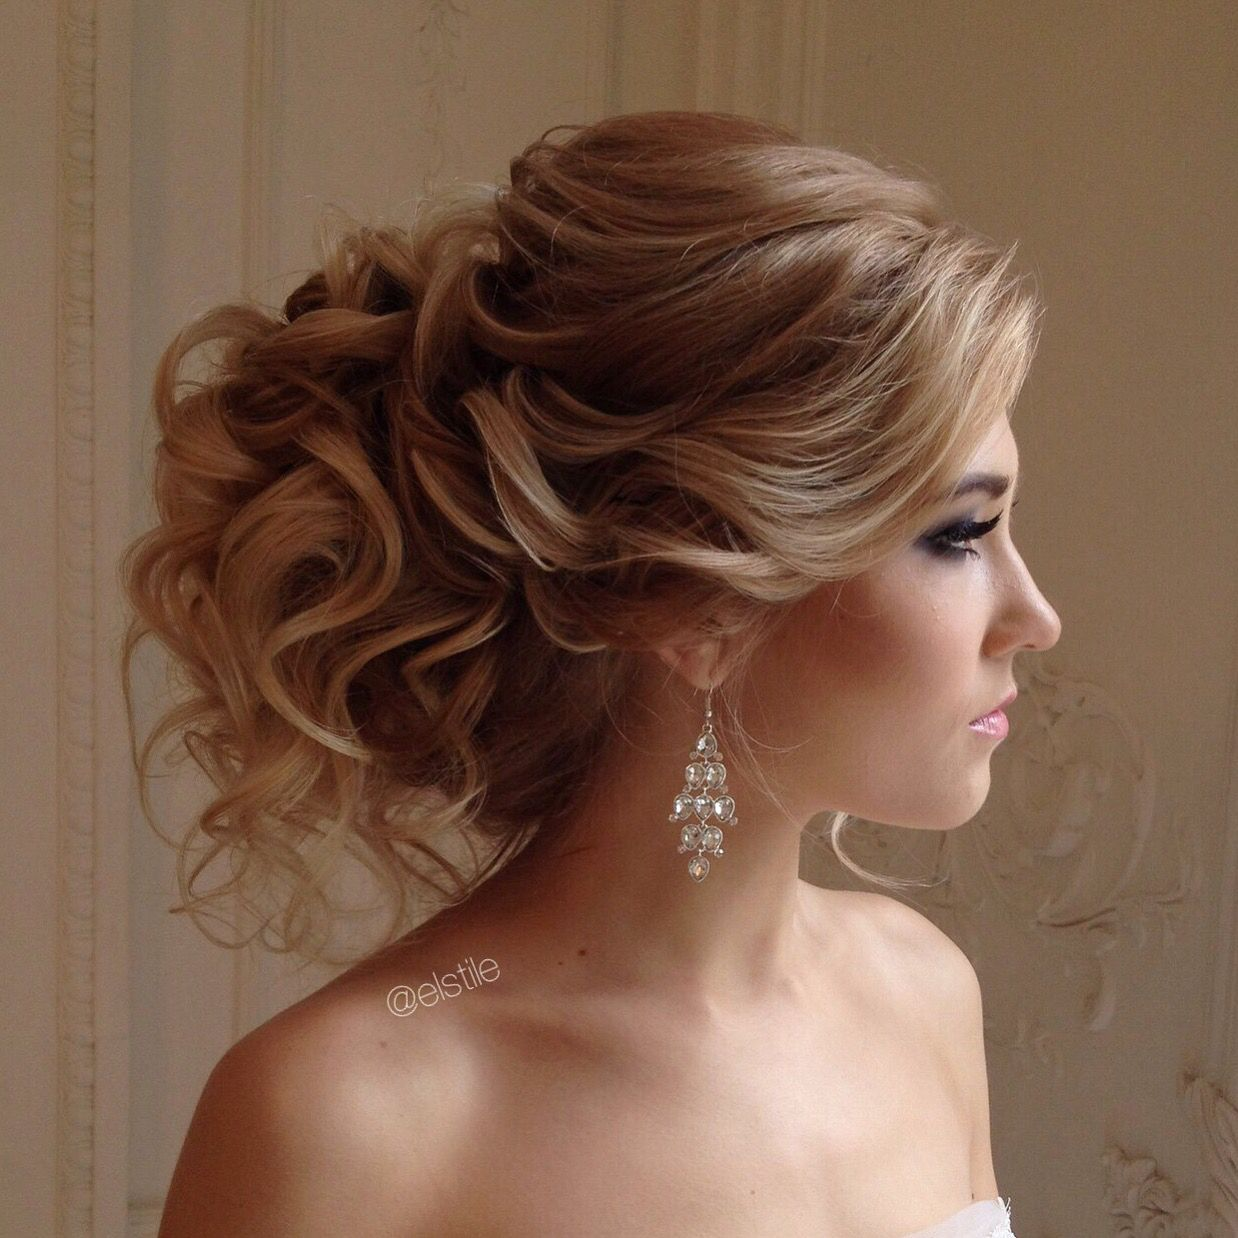 images of hair up styles lovely bridal look make up hairstyles web www elstile ru 7754